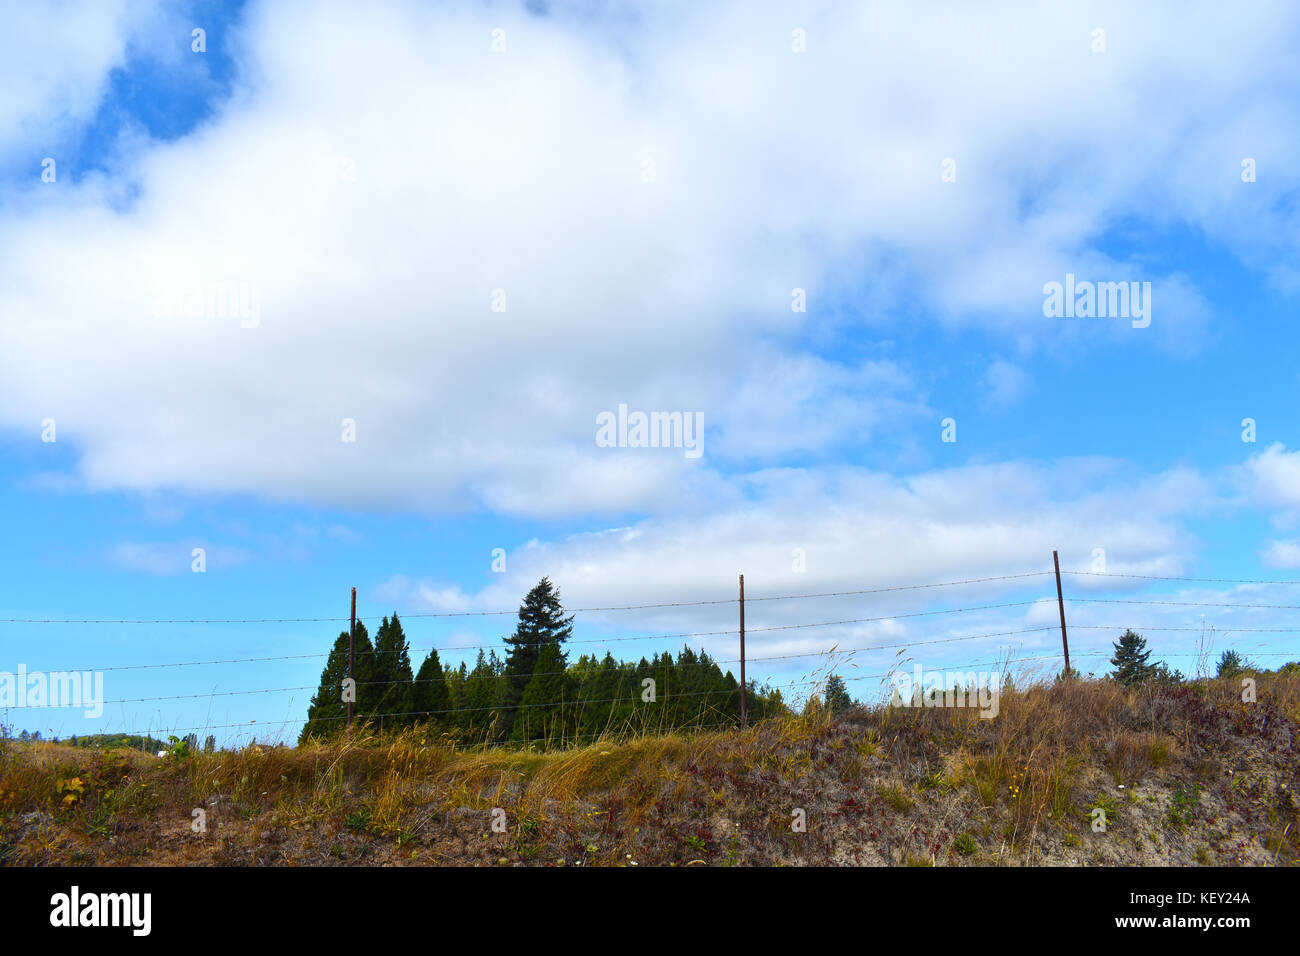 Barb wired fence on a hill with evergreen trees in the background under a cloudy blue sky. Drought, water shortage, - Stock Image